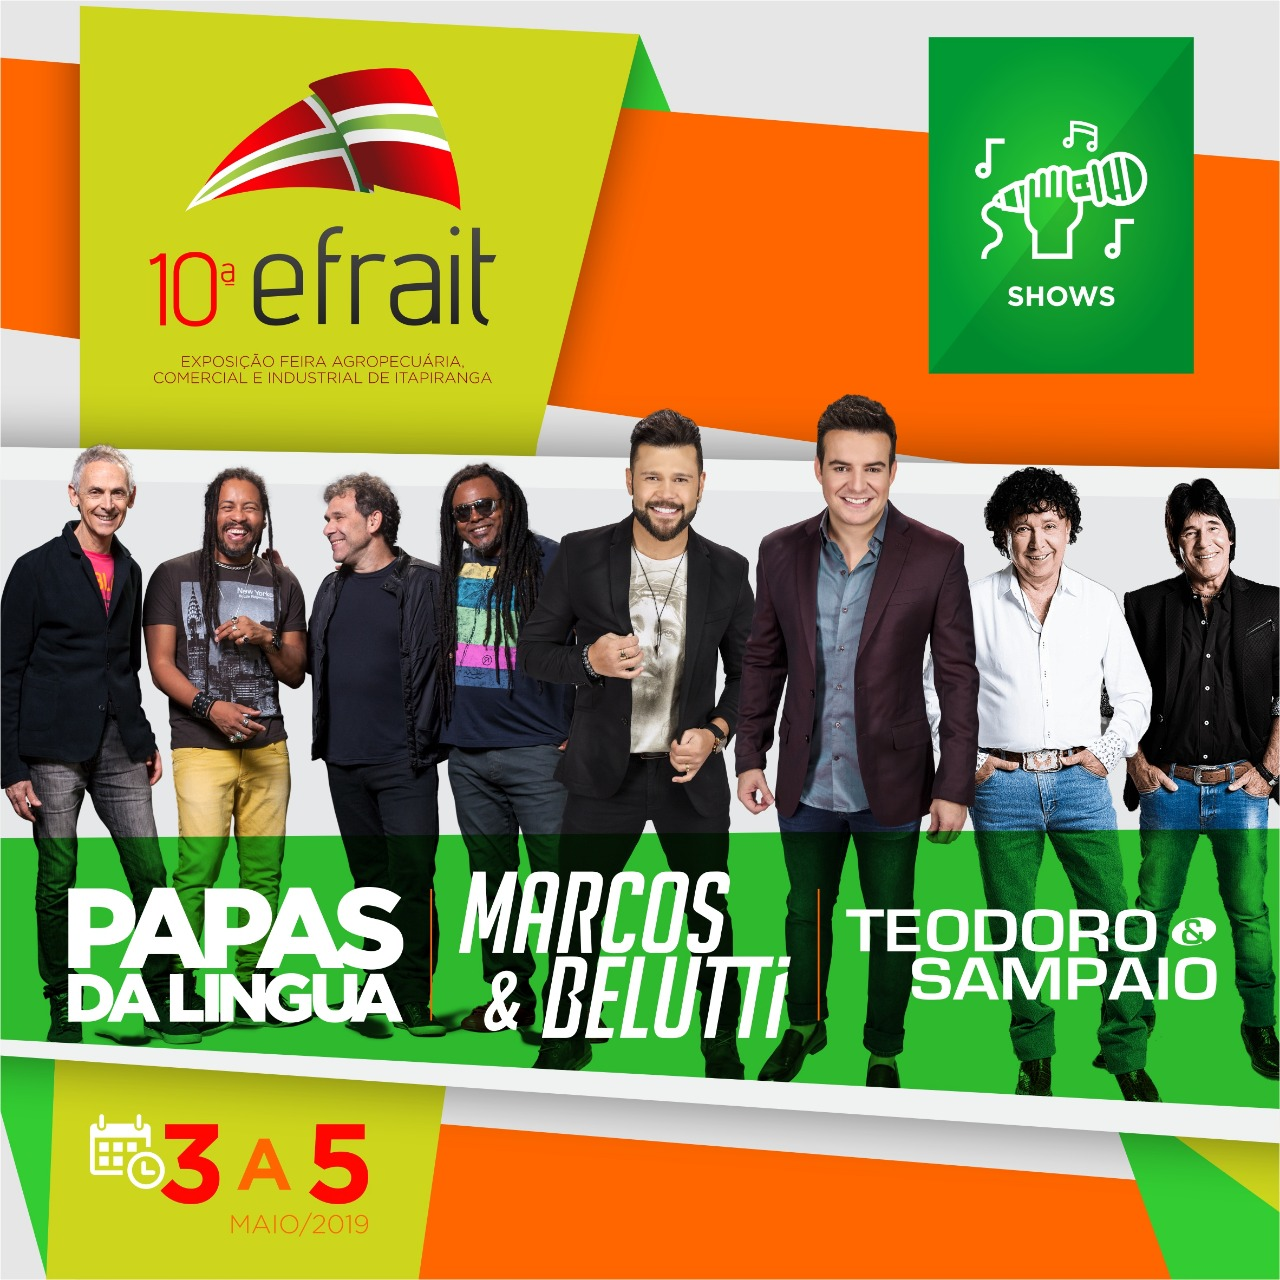 10ª Efrait anuncia shows e abre venda de estandes